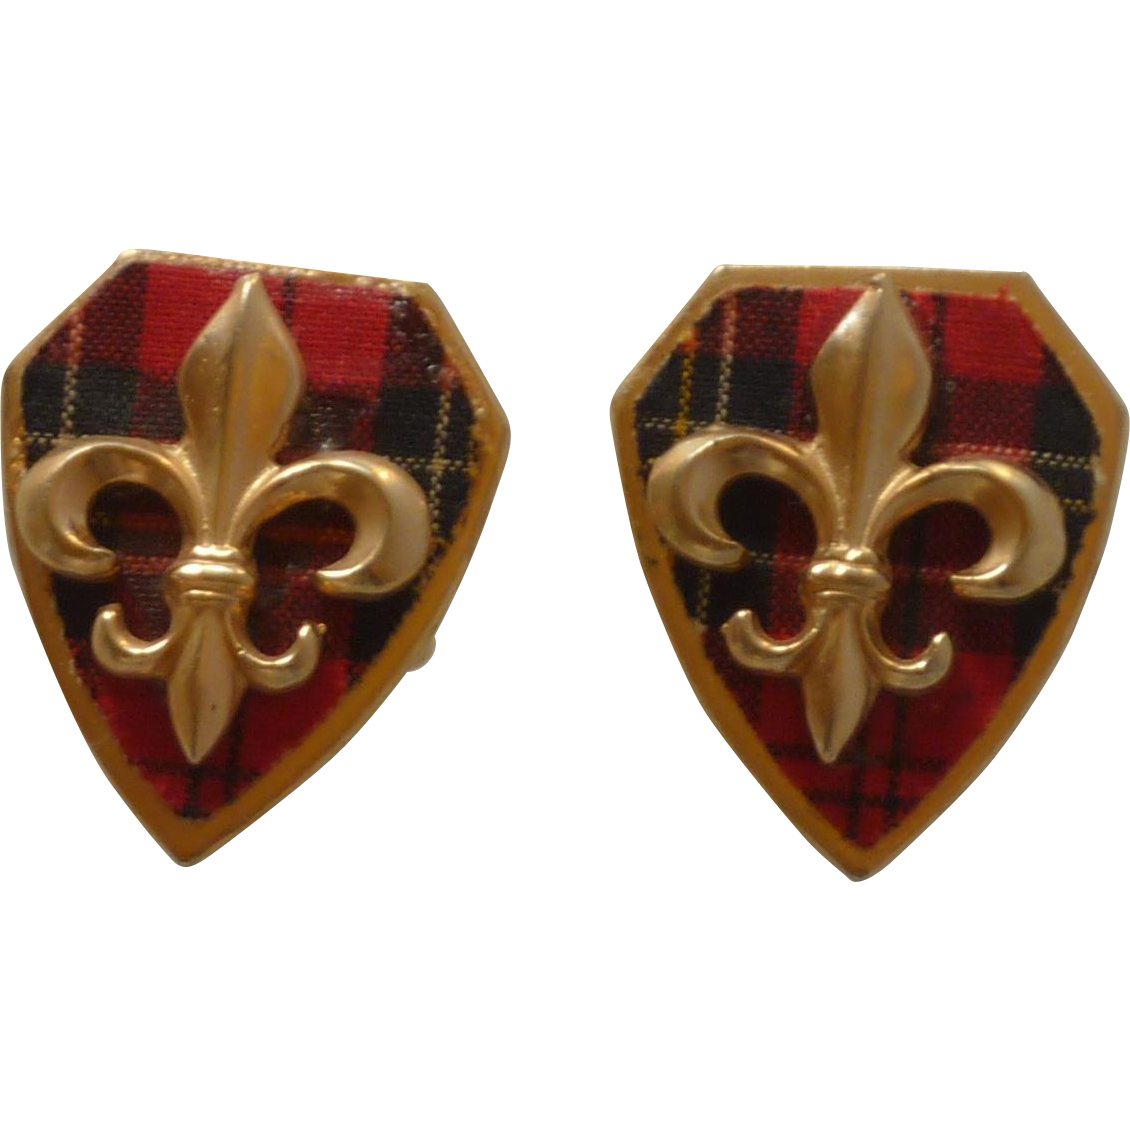 Plaid Tartan Shield with Fleur De Lis Cuff Links Cufflinks